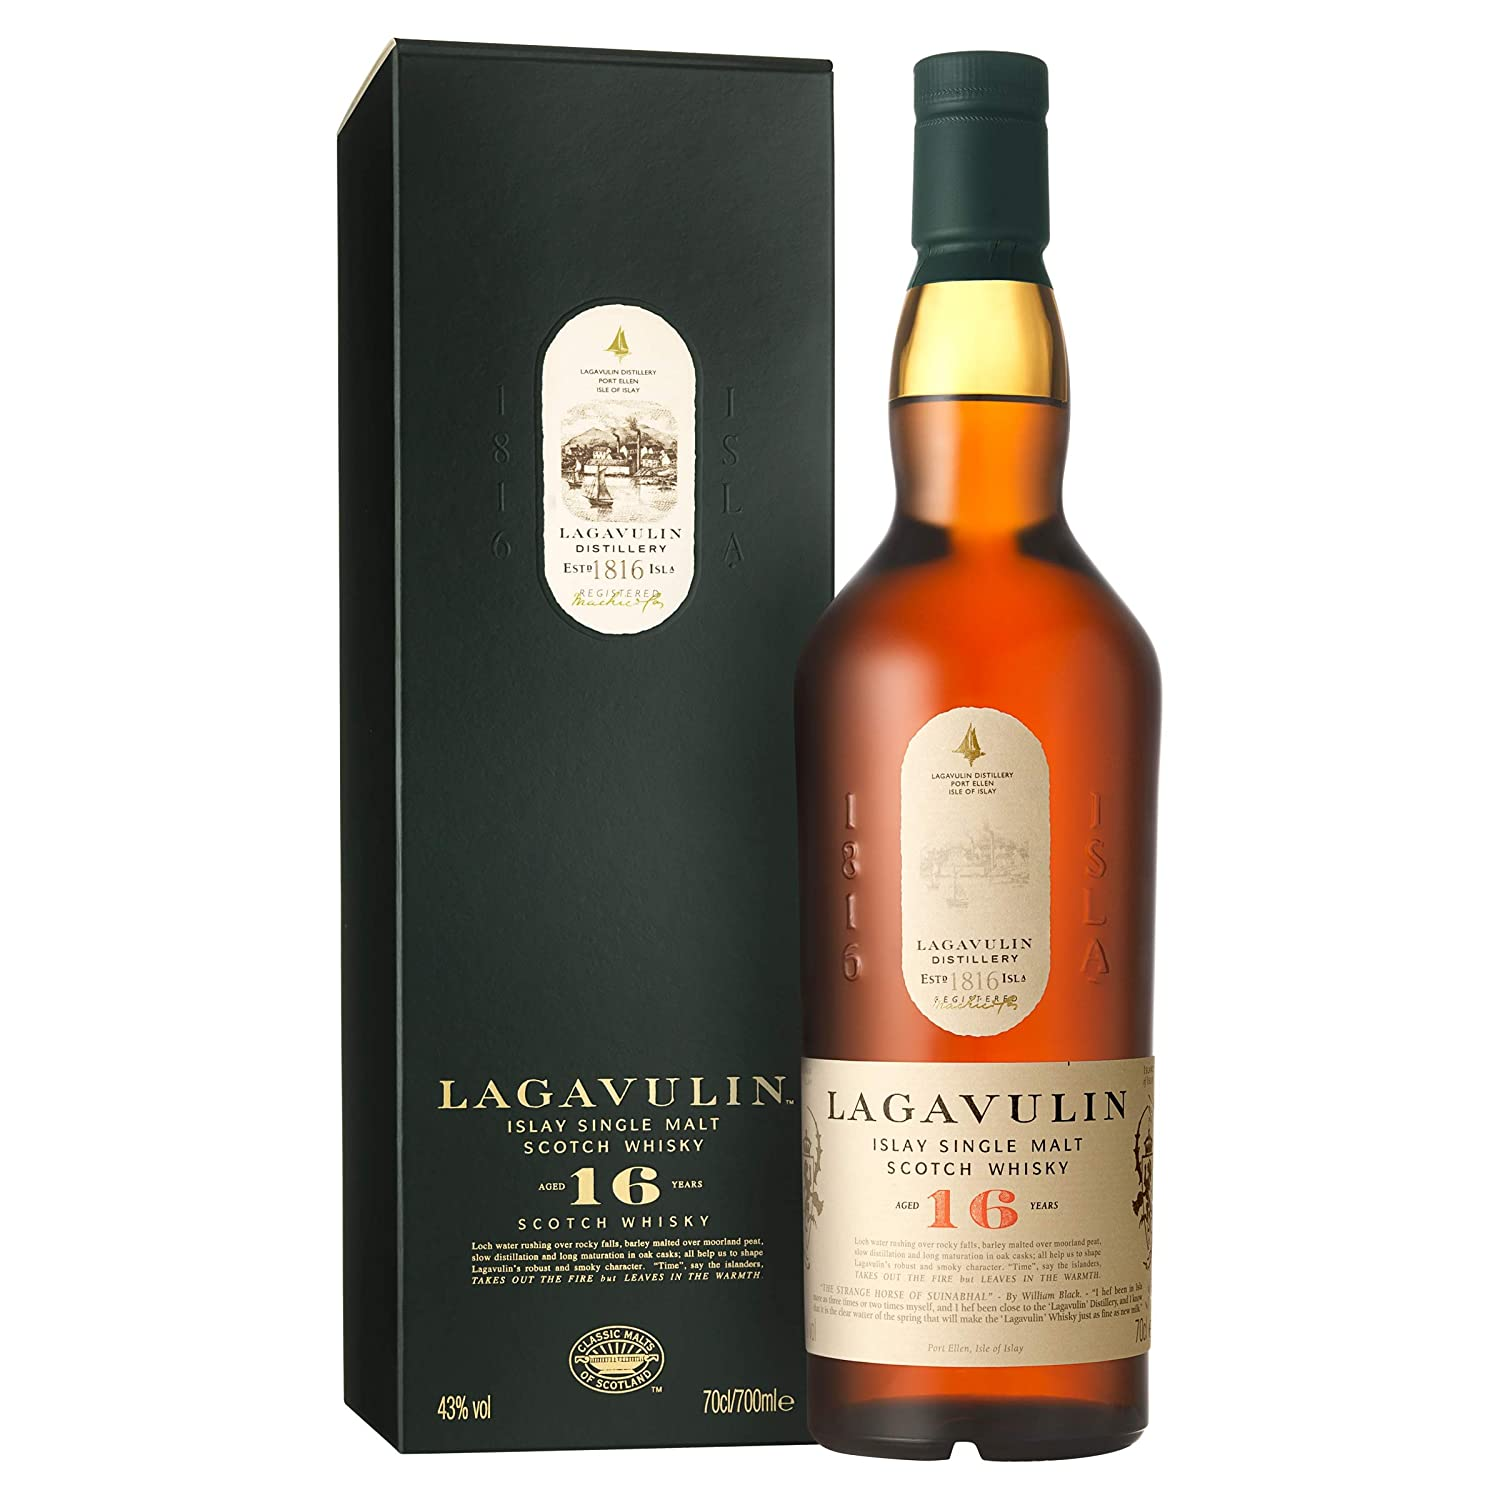 Lagavulin 16 Year Old Scotch Whisky Single Malt - Whisky Scozzese Puro Malto dell'isola di Islay invecchiato 16 anni - 1 x 70 cl